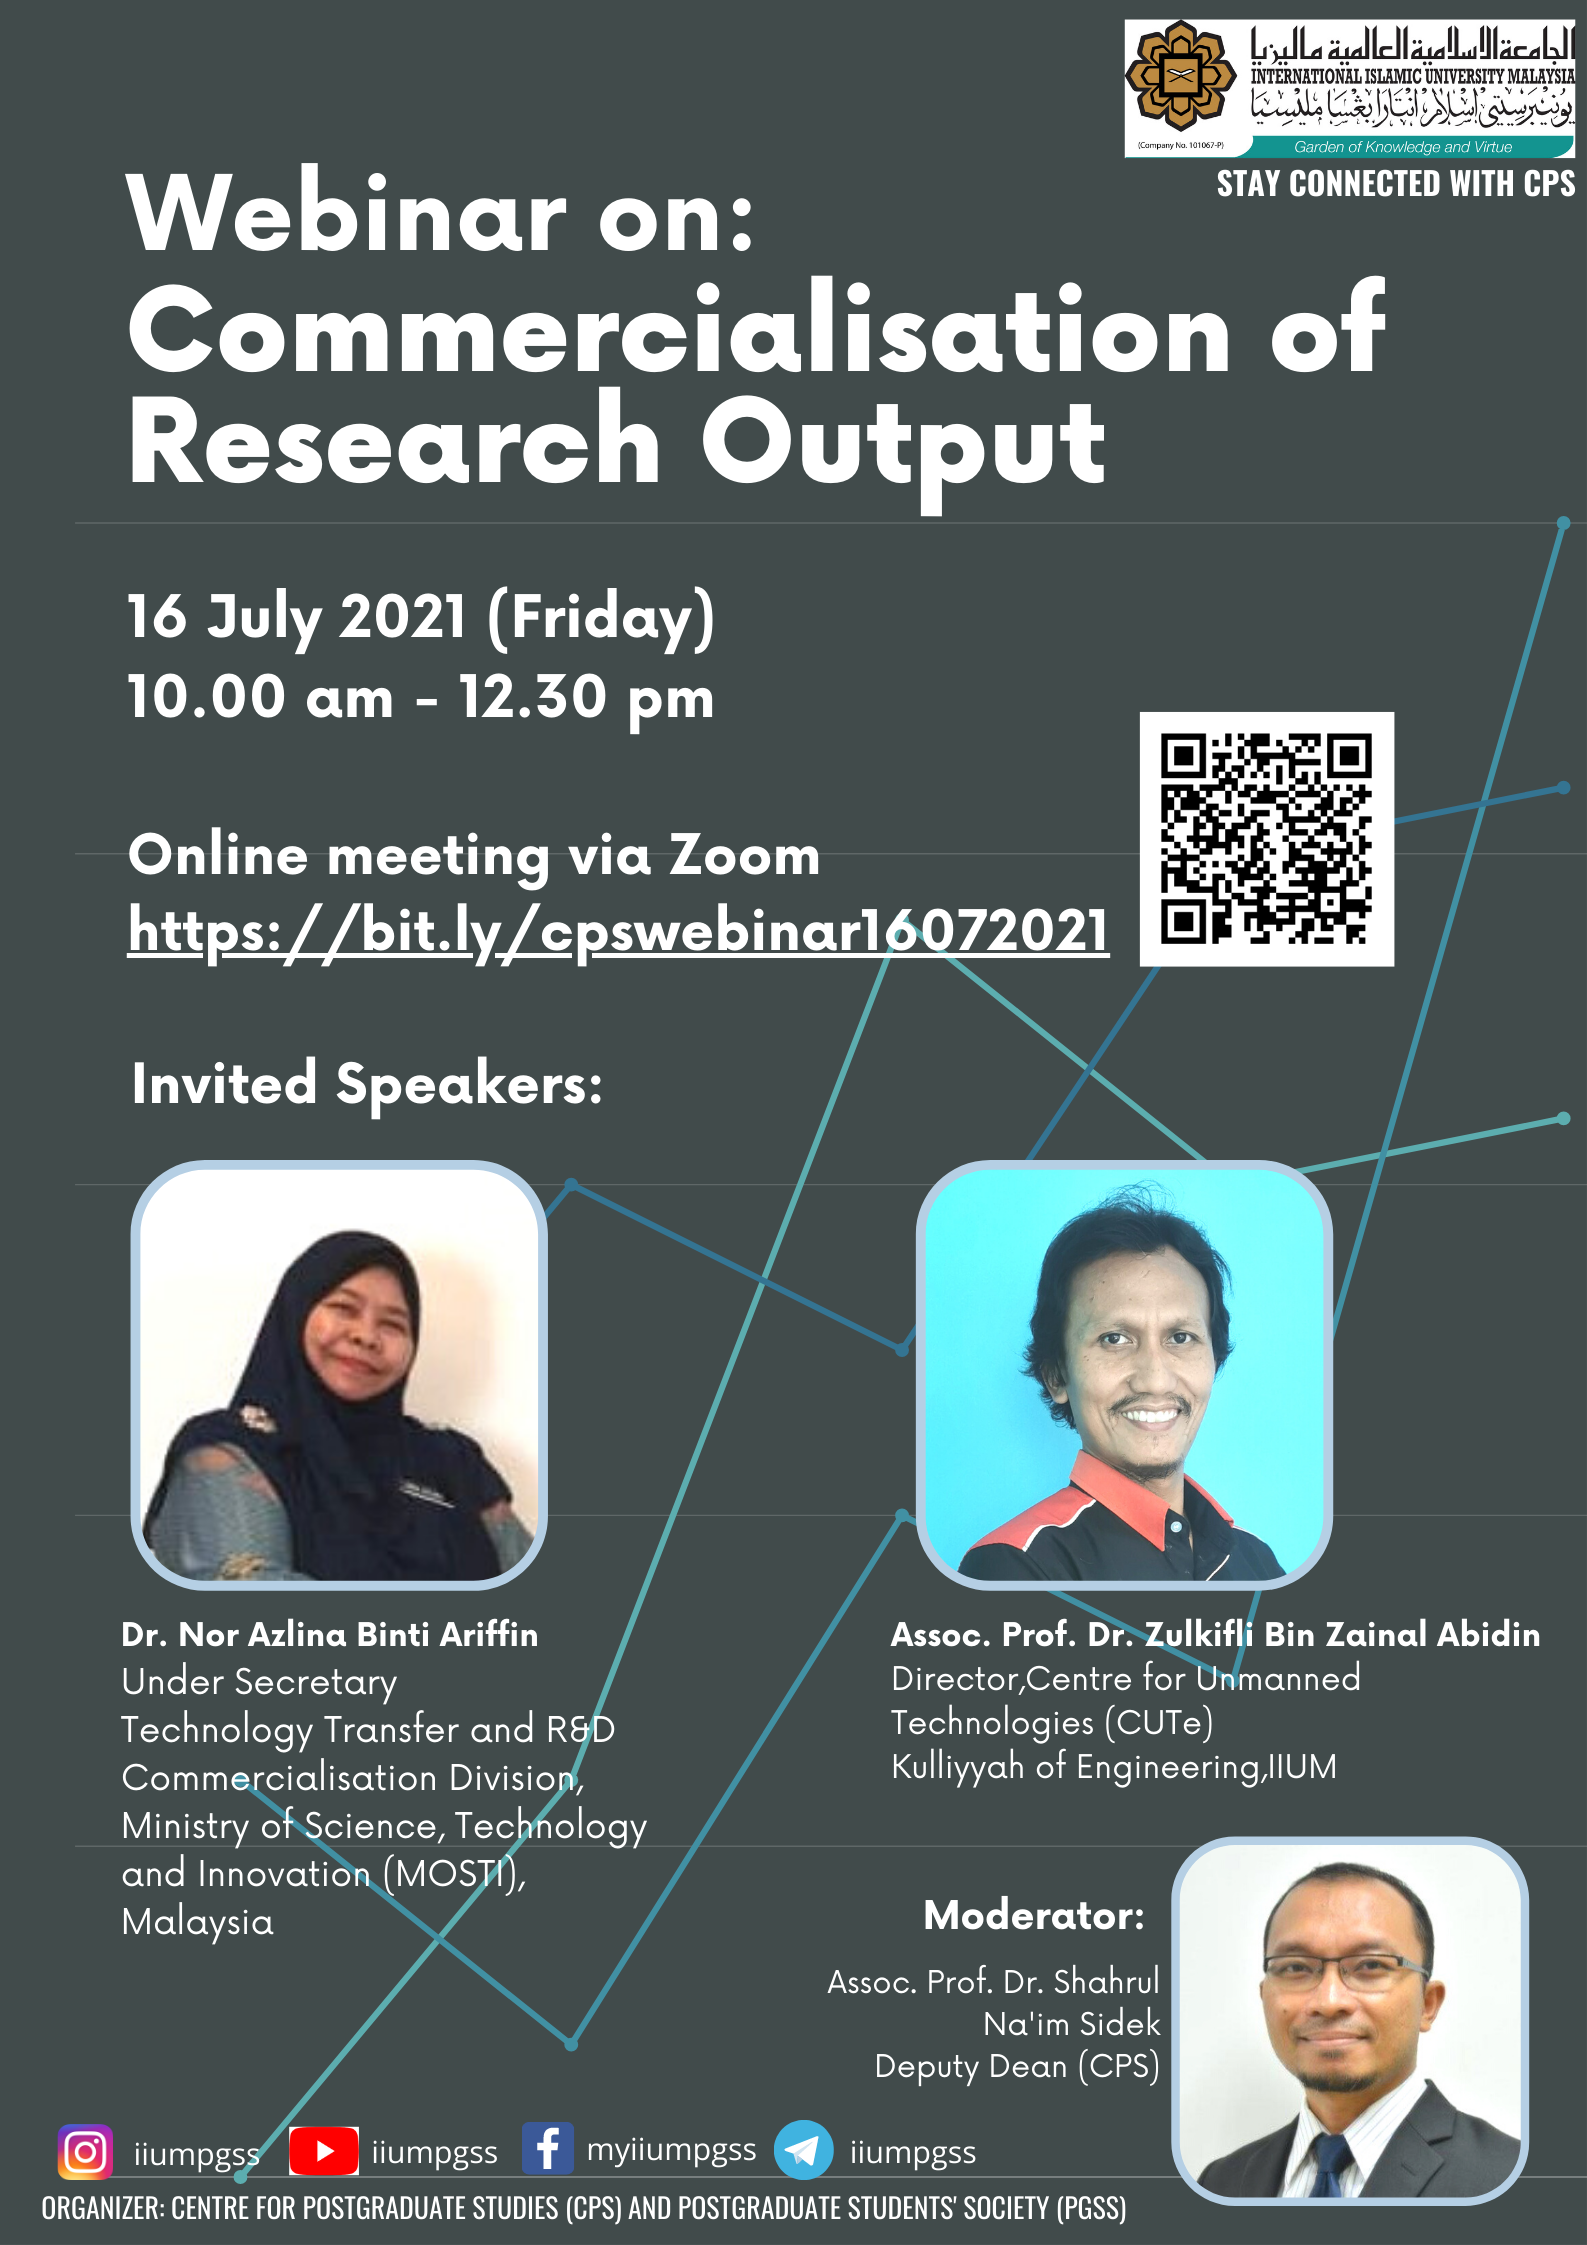 INVITATION TO ATTEND WEBINAR ON COMMERCIALISATION OF RESEARCH OUTPUT